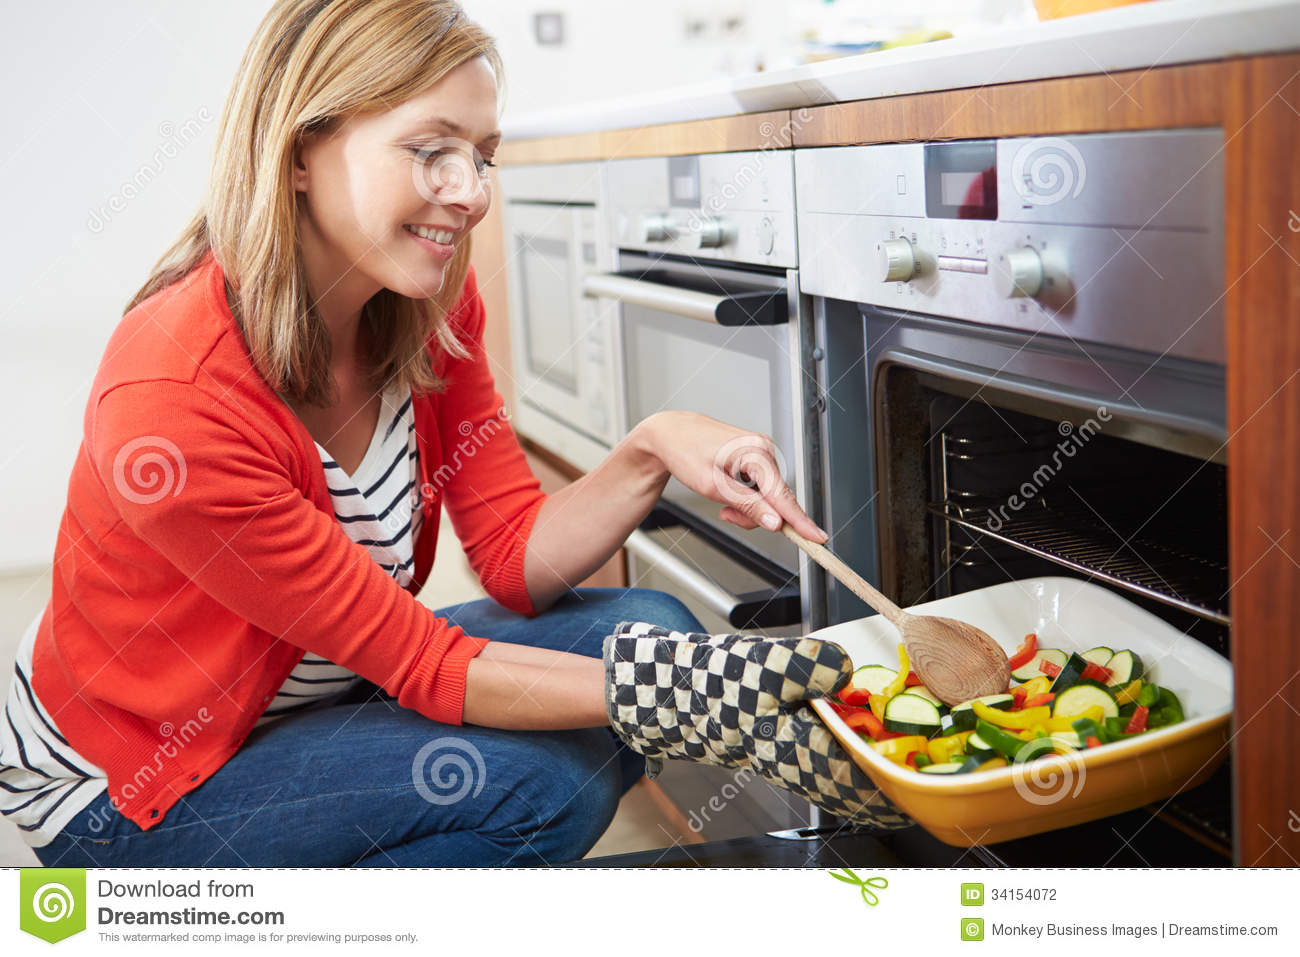 Woman Putting Tray Of Roast Vegetables Into Oven Stock